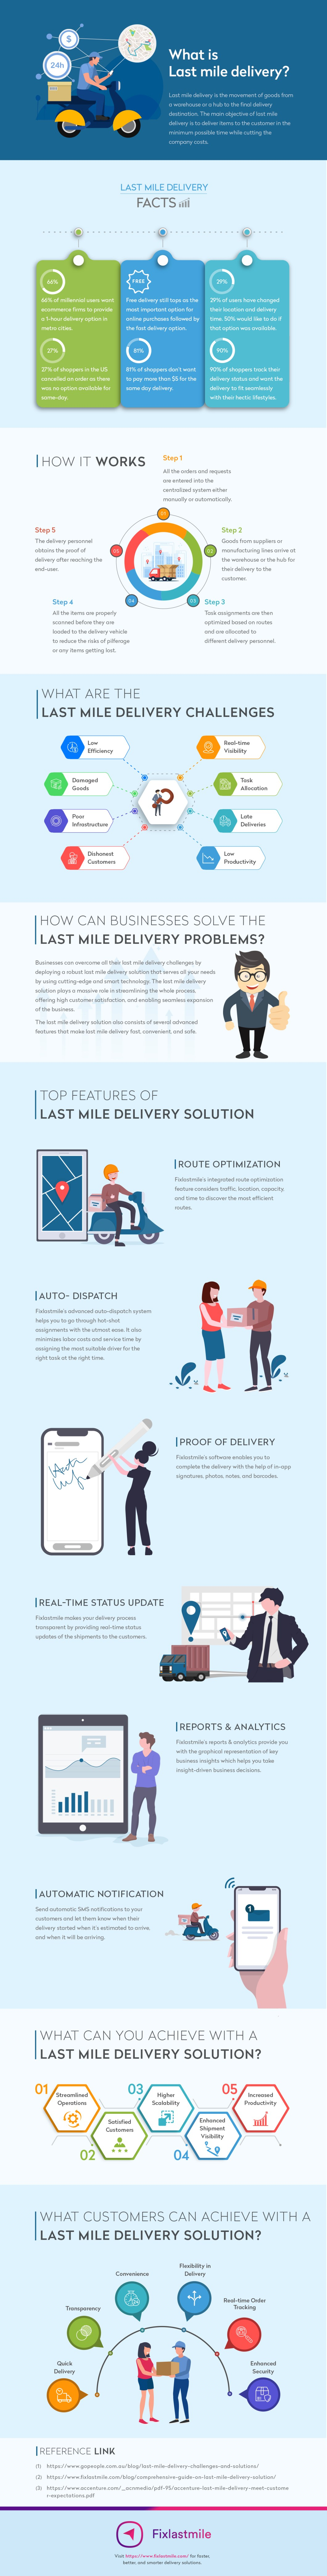 Last Mile Delivery Mechanisms: Challenges and Solutions - Infographic